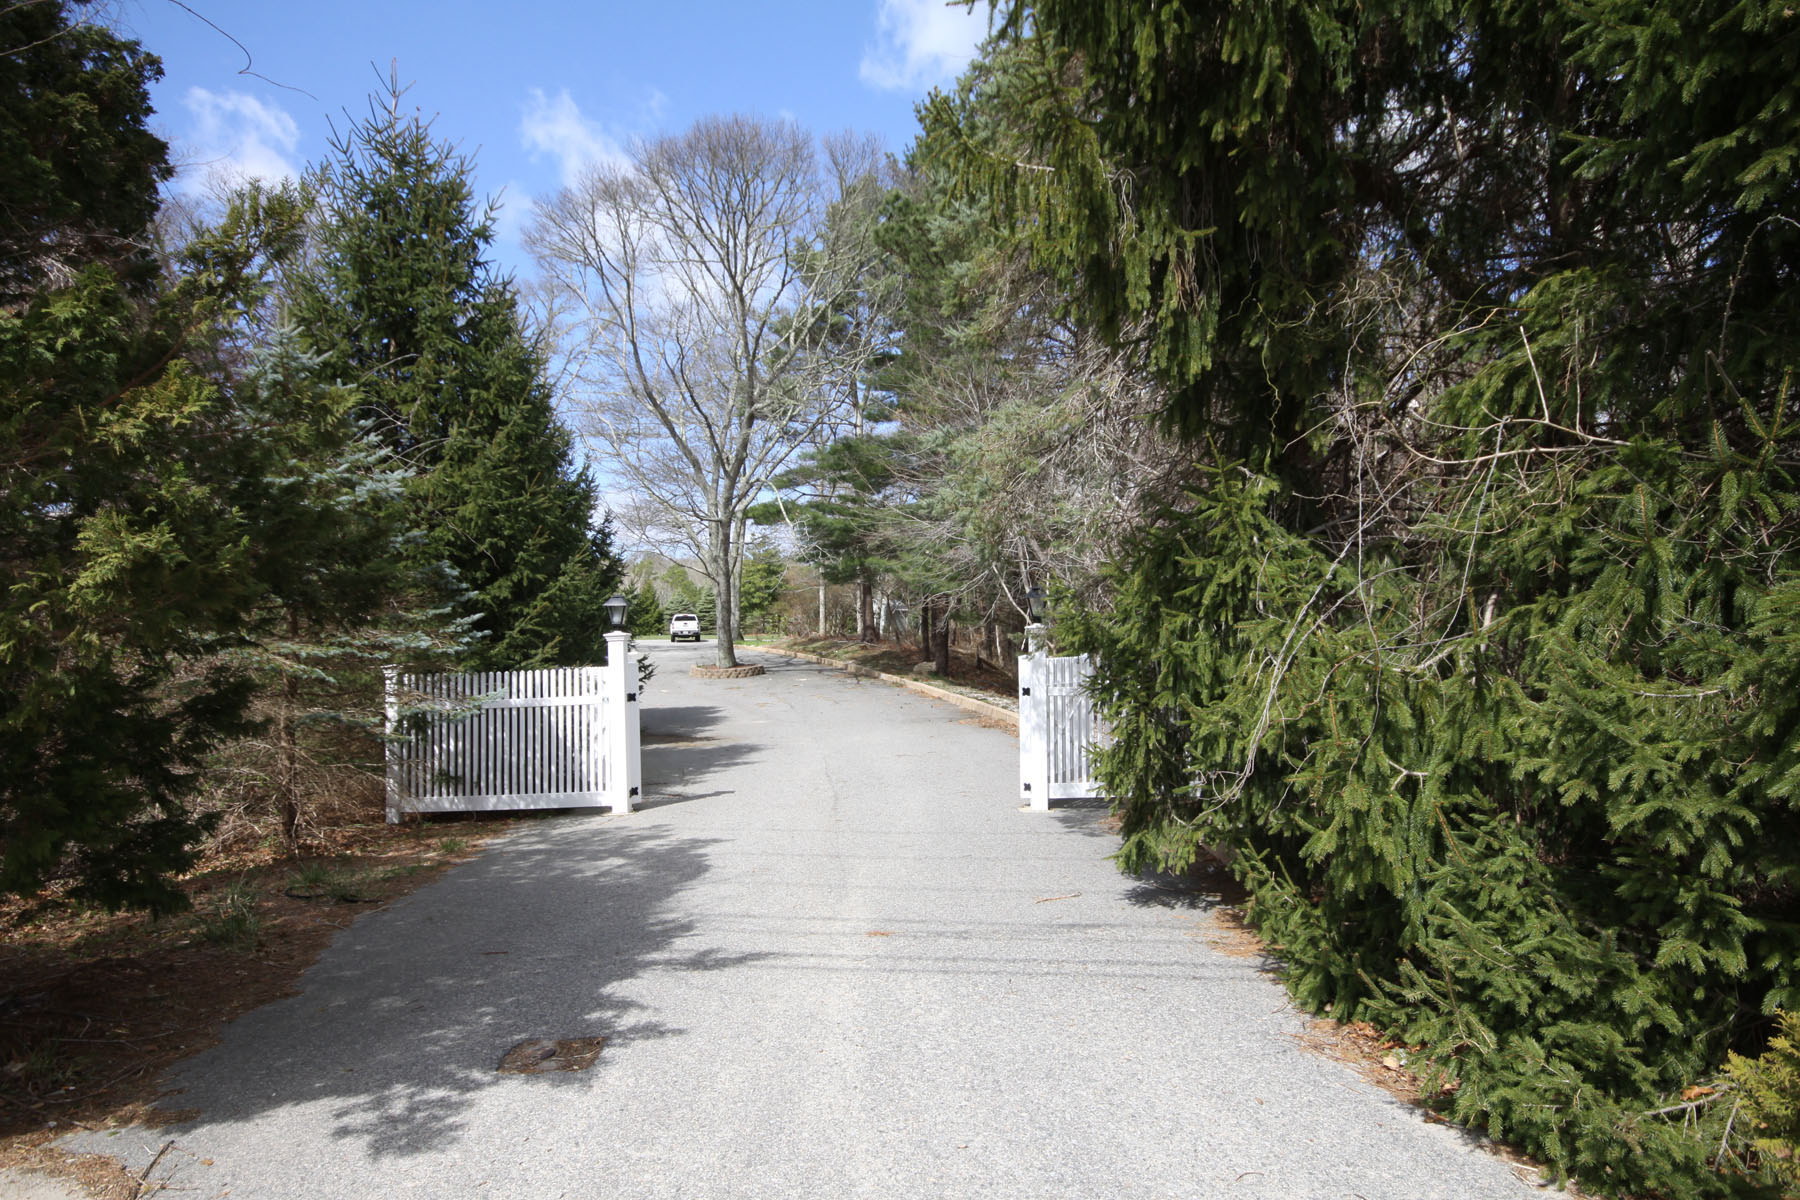 Maison unifamiliale pour l Vente à PRIVACY AWAITS! 744 North Falmouth Highway East Falmouth, Massachusetts, 02556 États-Unis